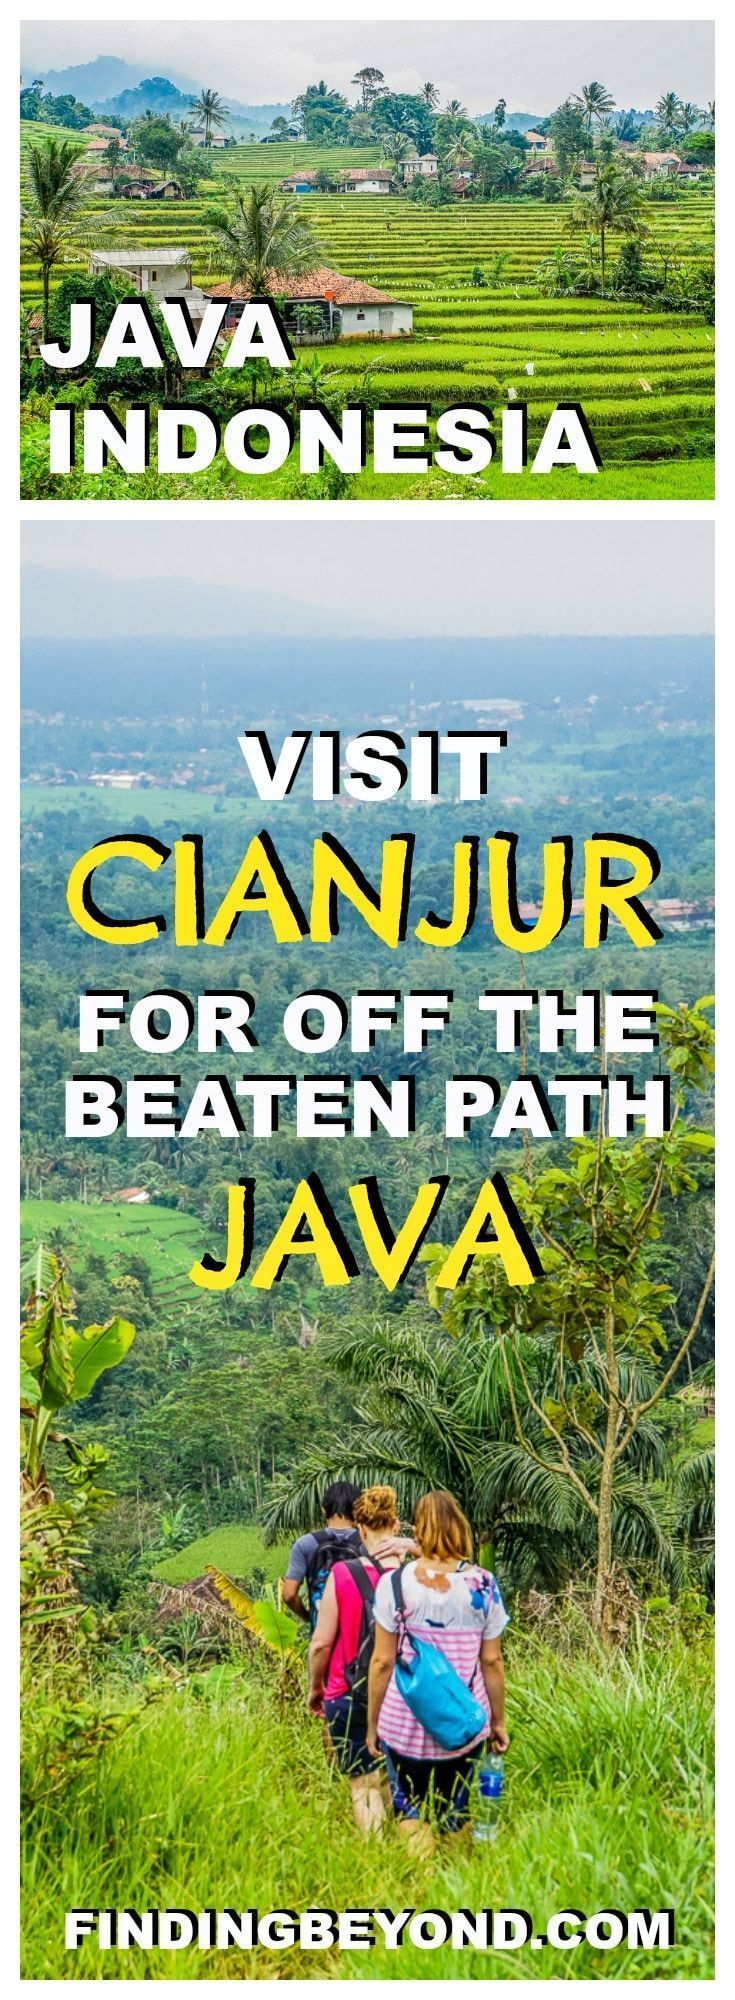 Visit Cianjur For Off The Beaten Path Java, Indonesia